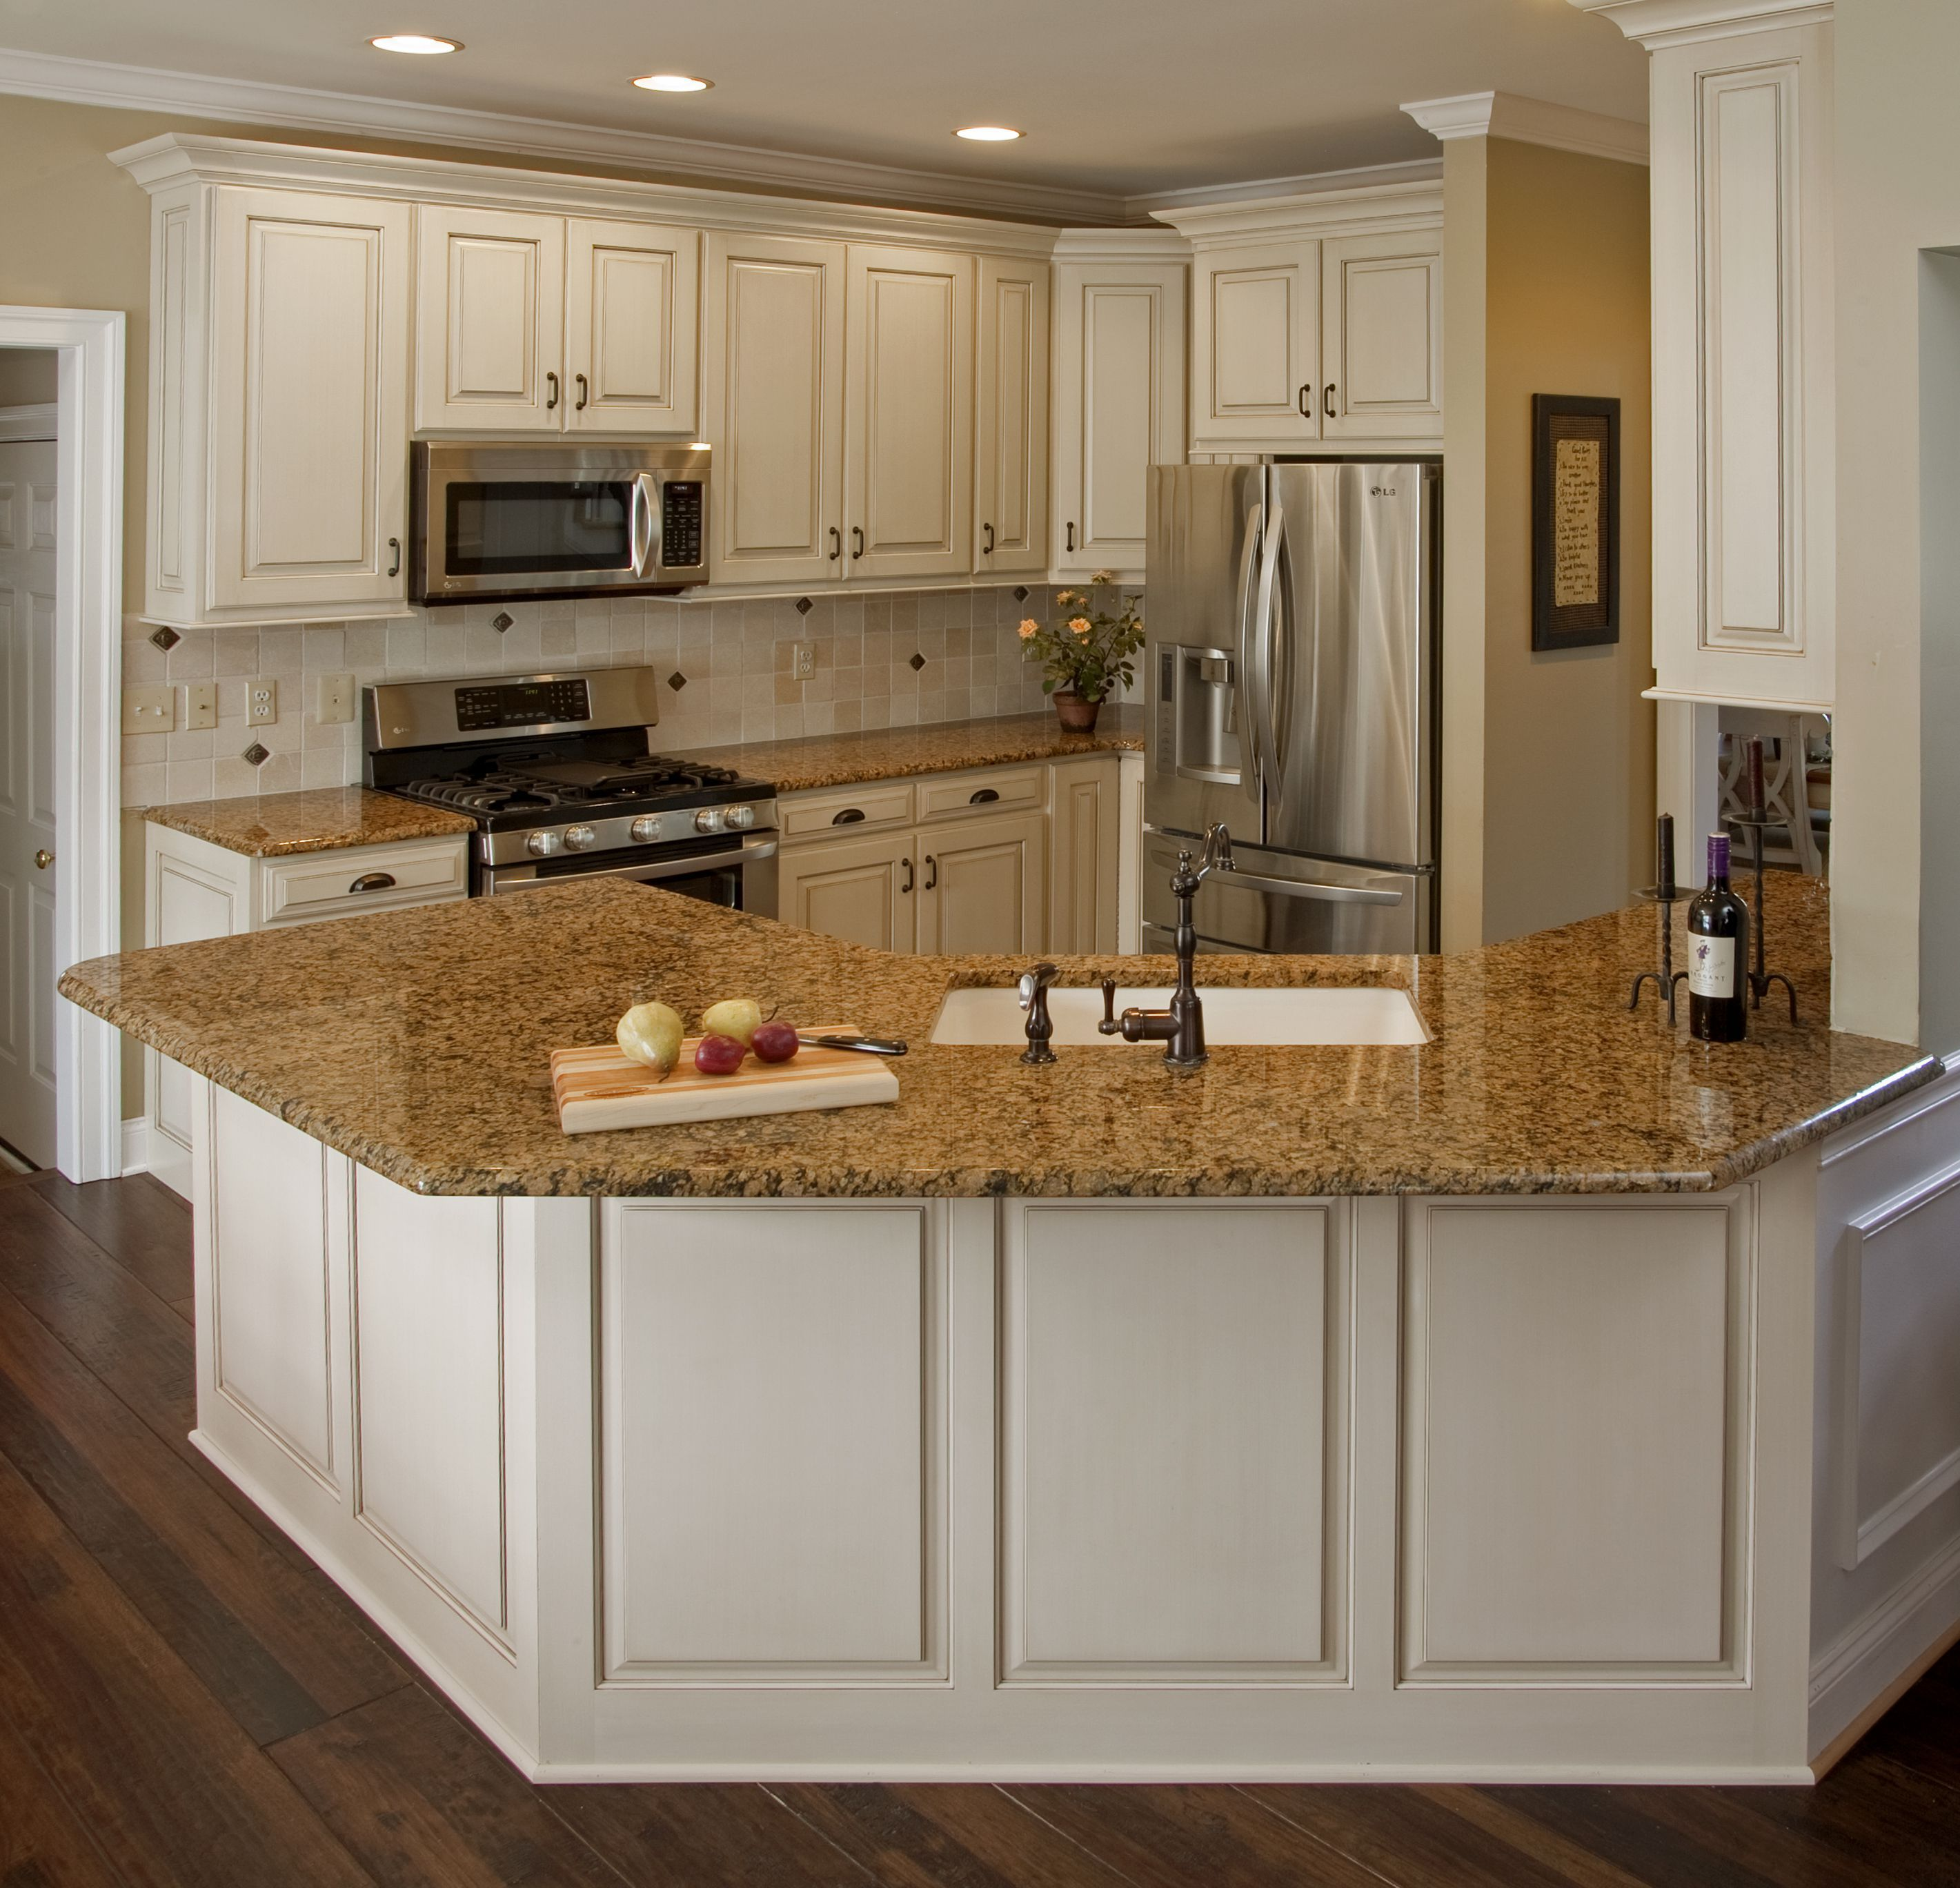 Kitchen Cabinets Cost: Inspiring Kitchen Decor Using Cabinet Refacing Cost On